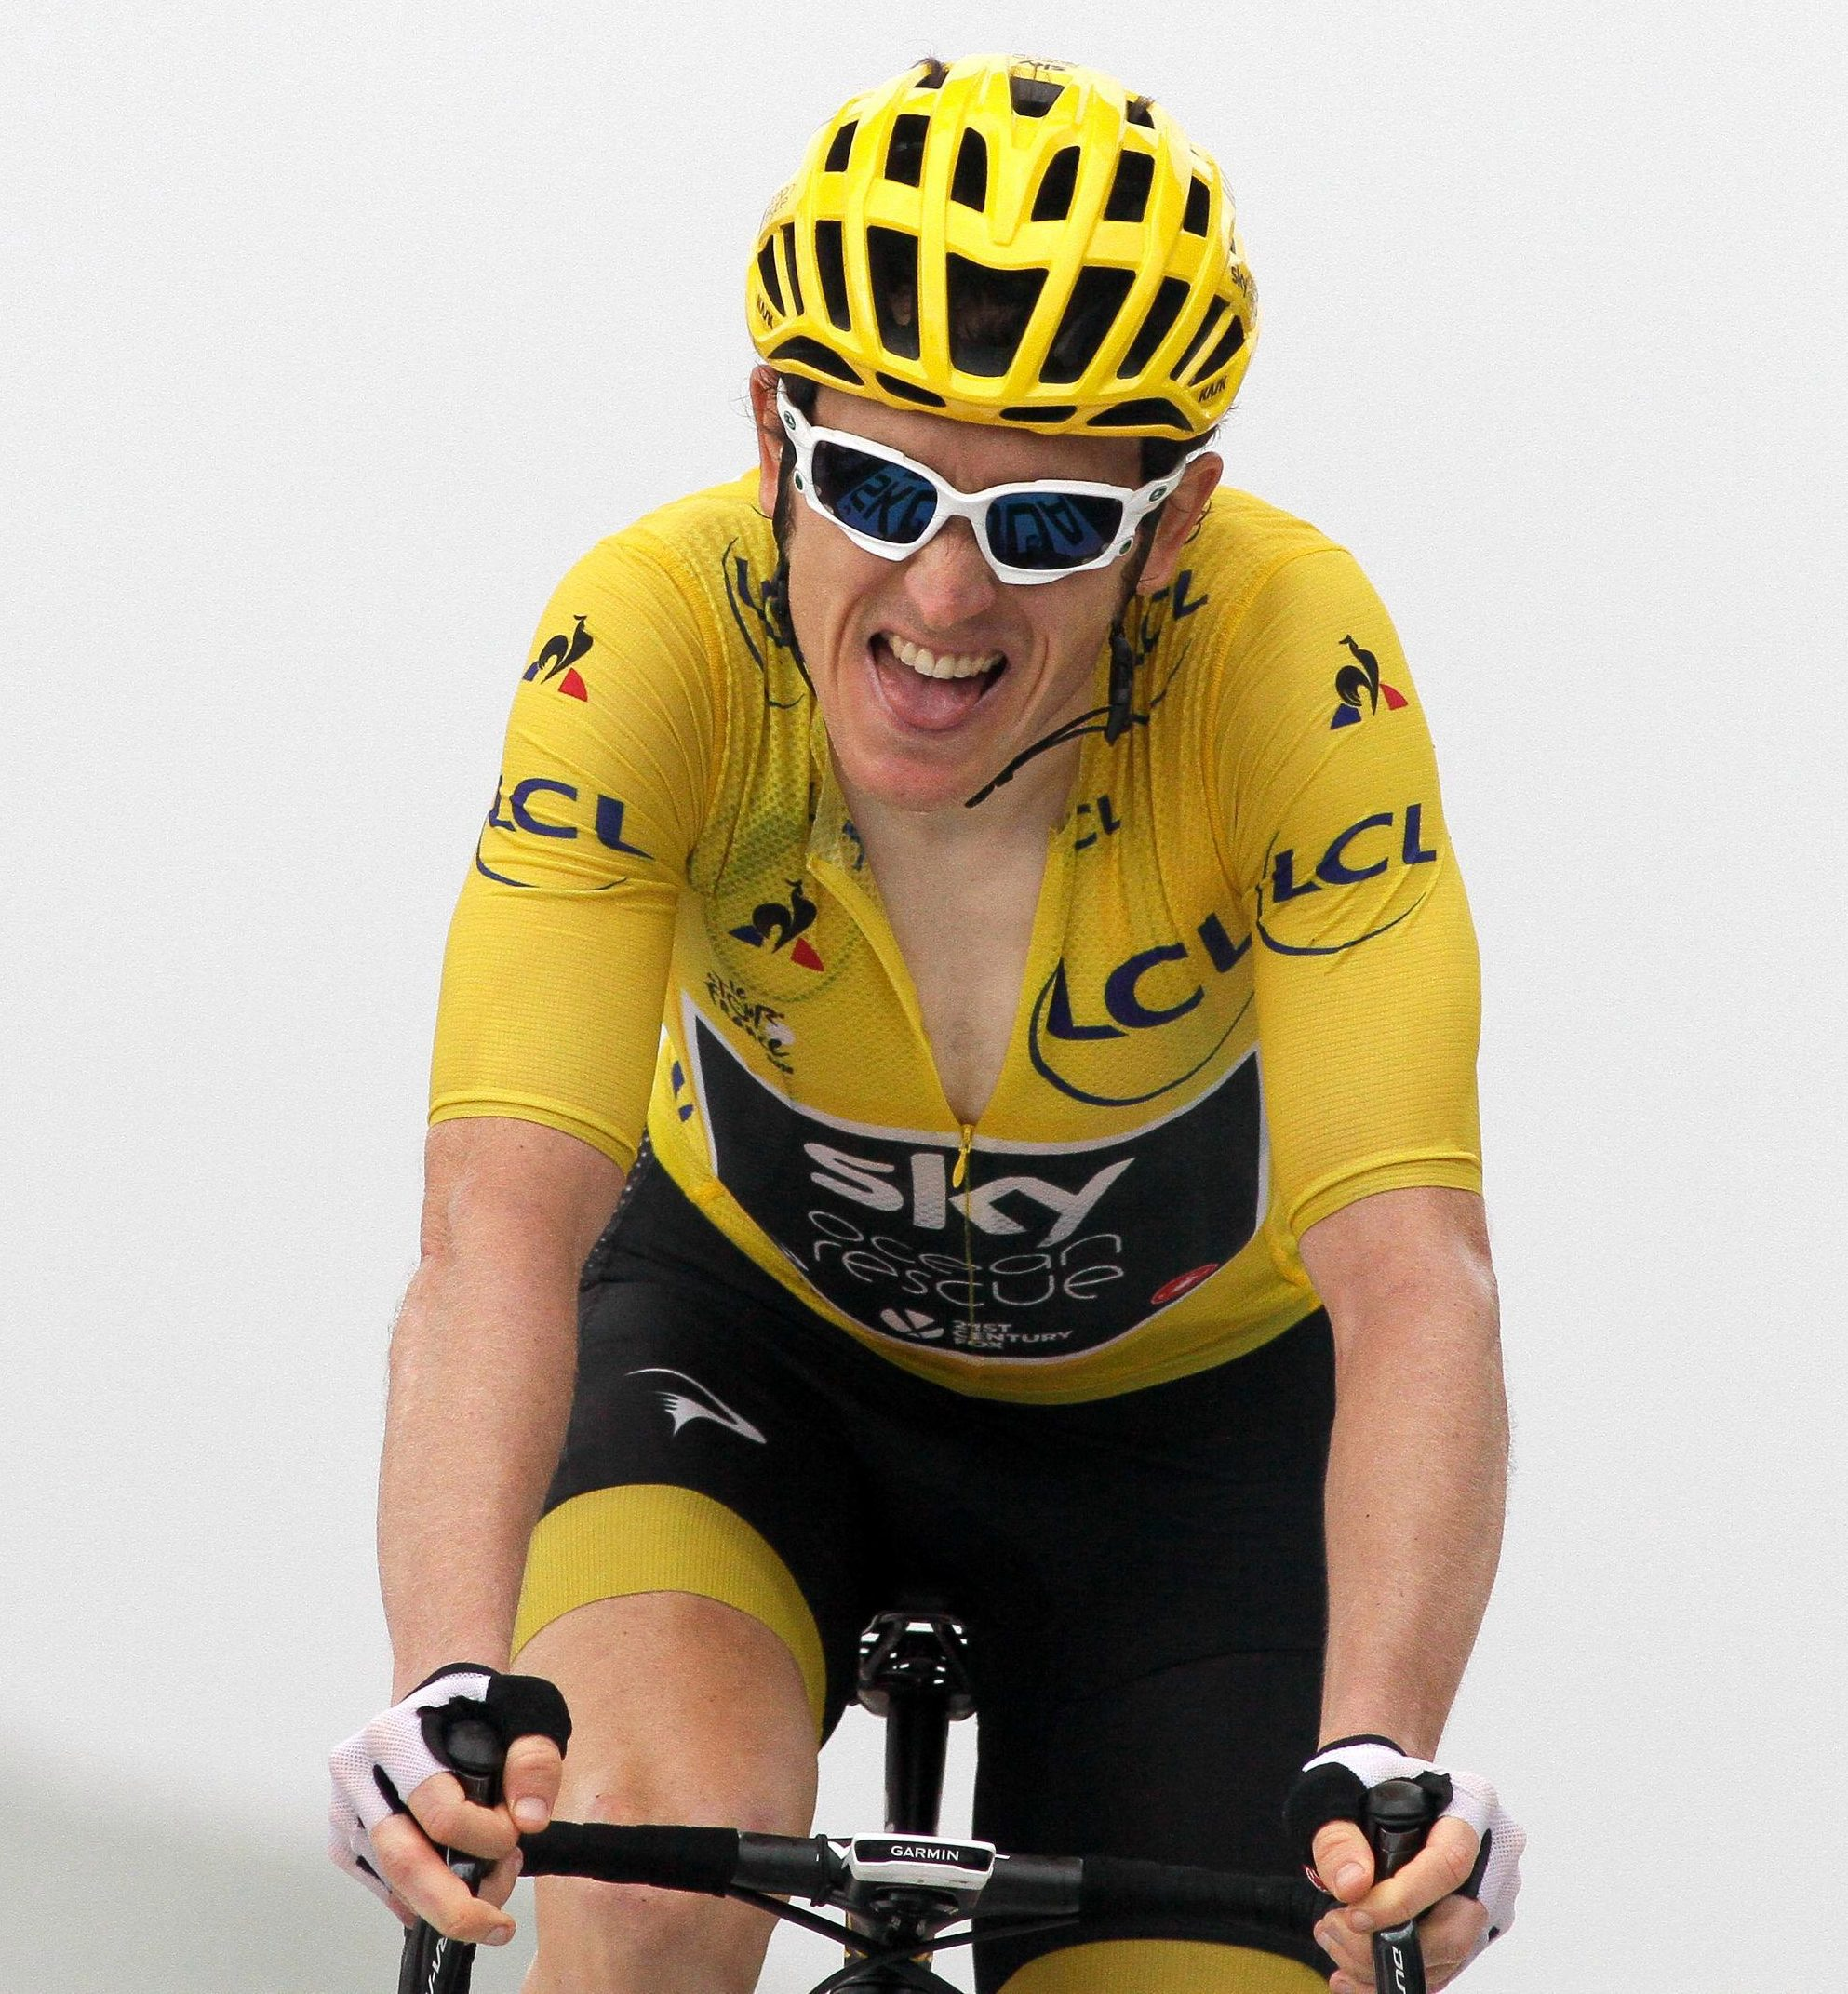 Two-time Olympic gold medallist Geraint Thomas has burst out of the shadow of Team Sky's fellow British rider Chris Froome